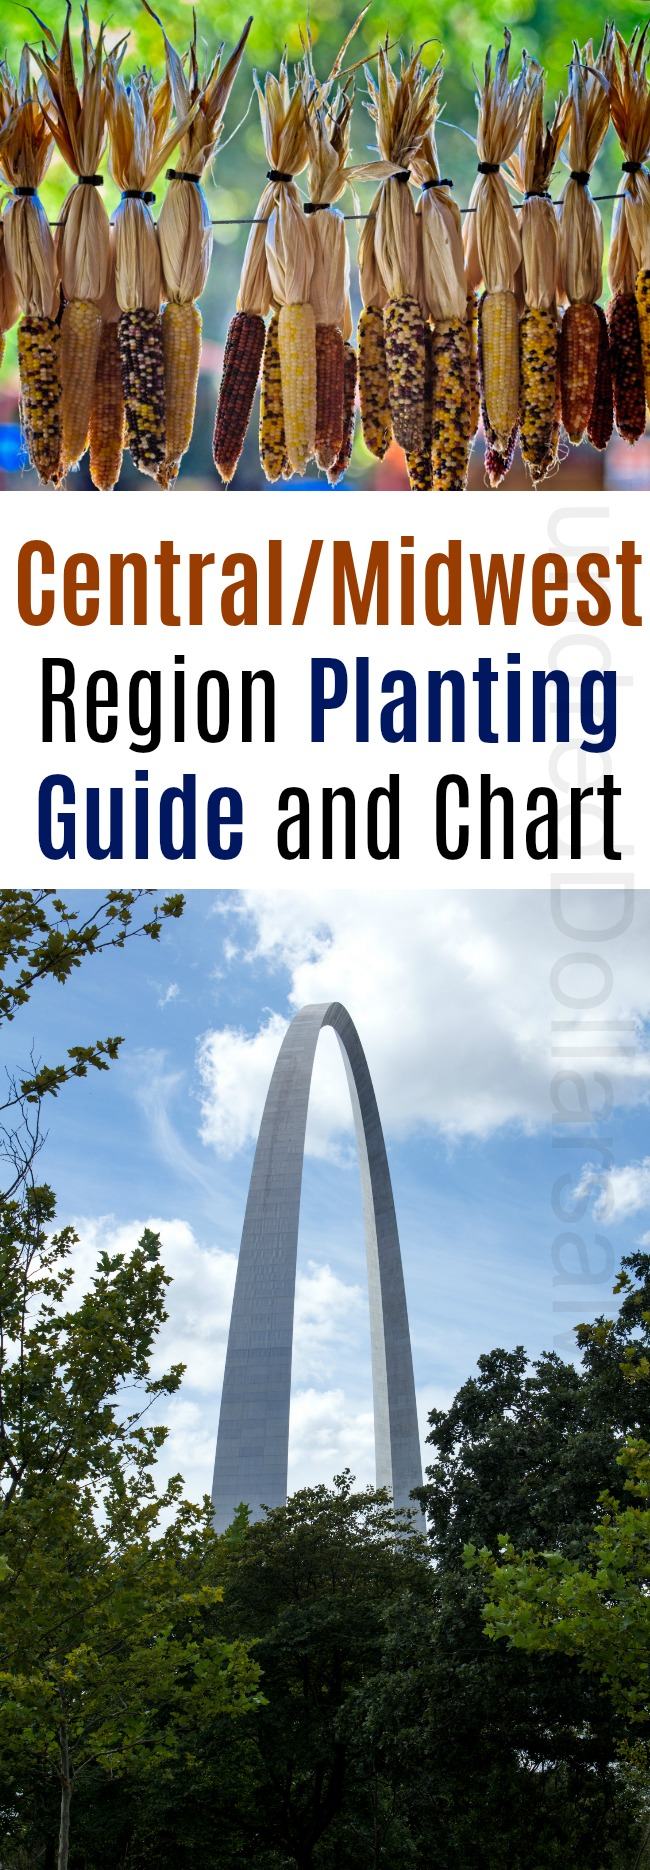 Central/Midwest Region Planting Guide